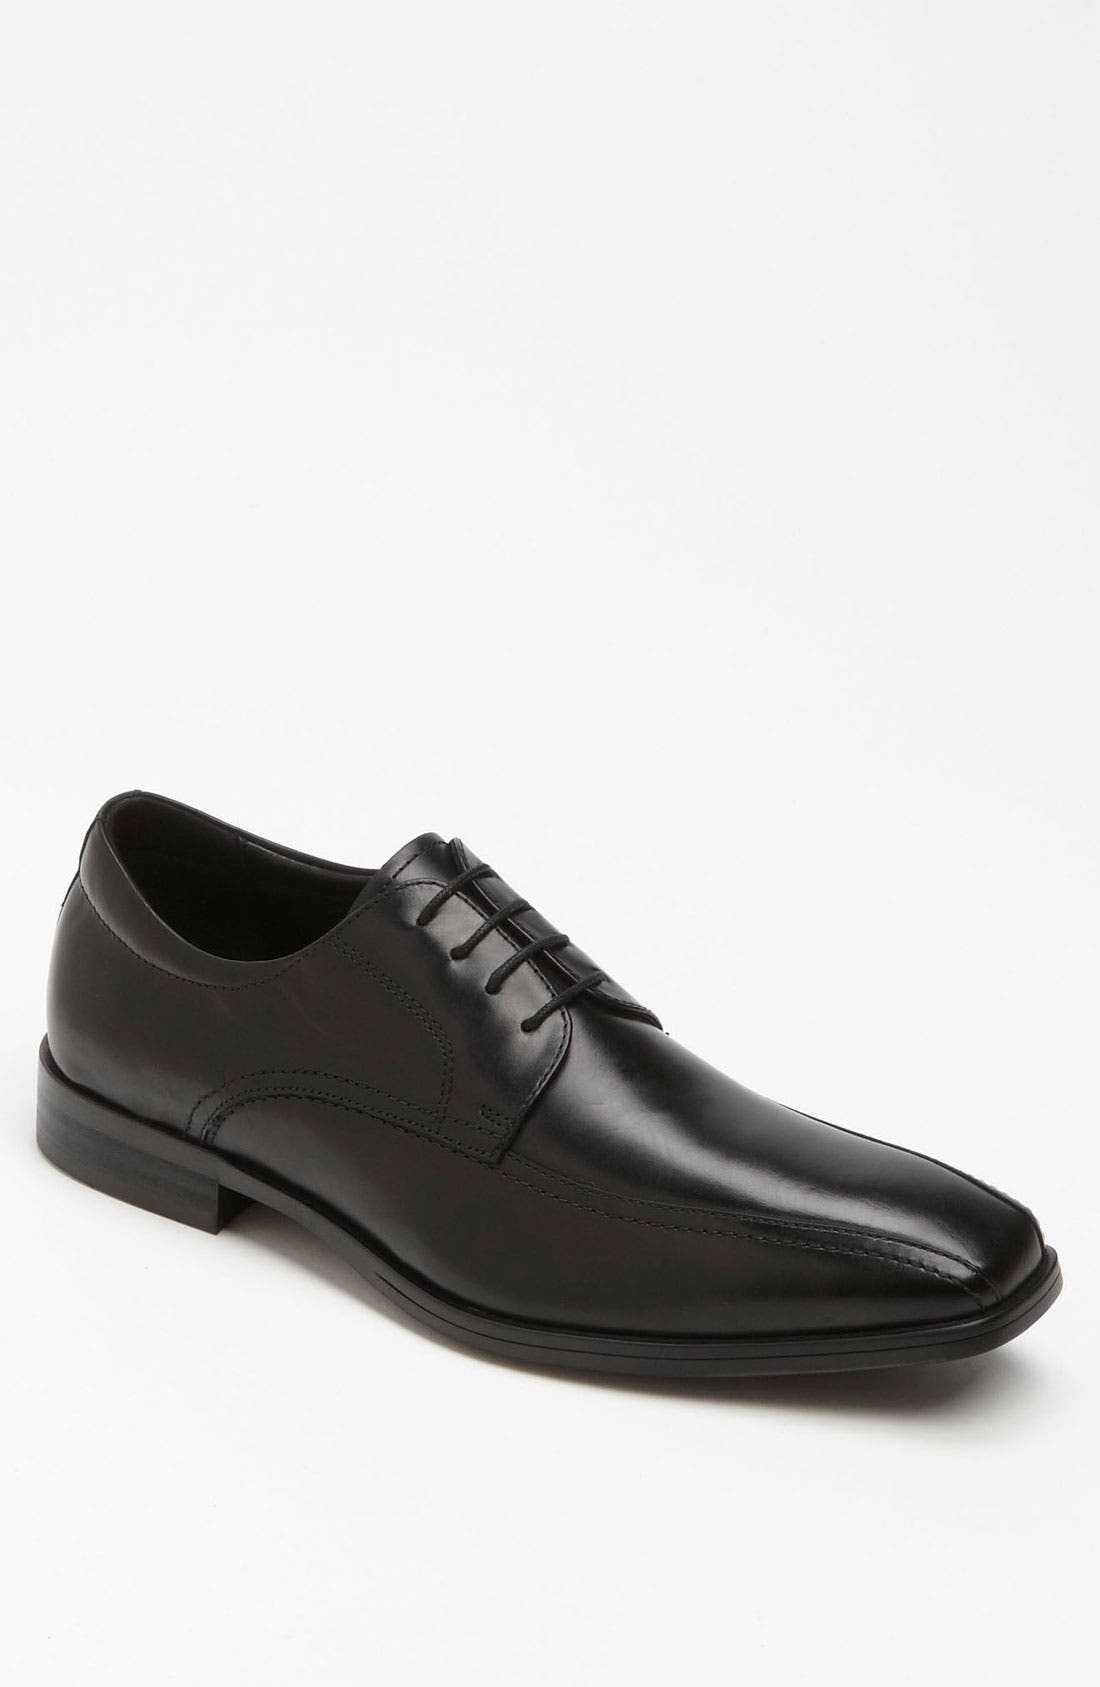 Main Image - ALDO 'Regnaut' Oxford